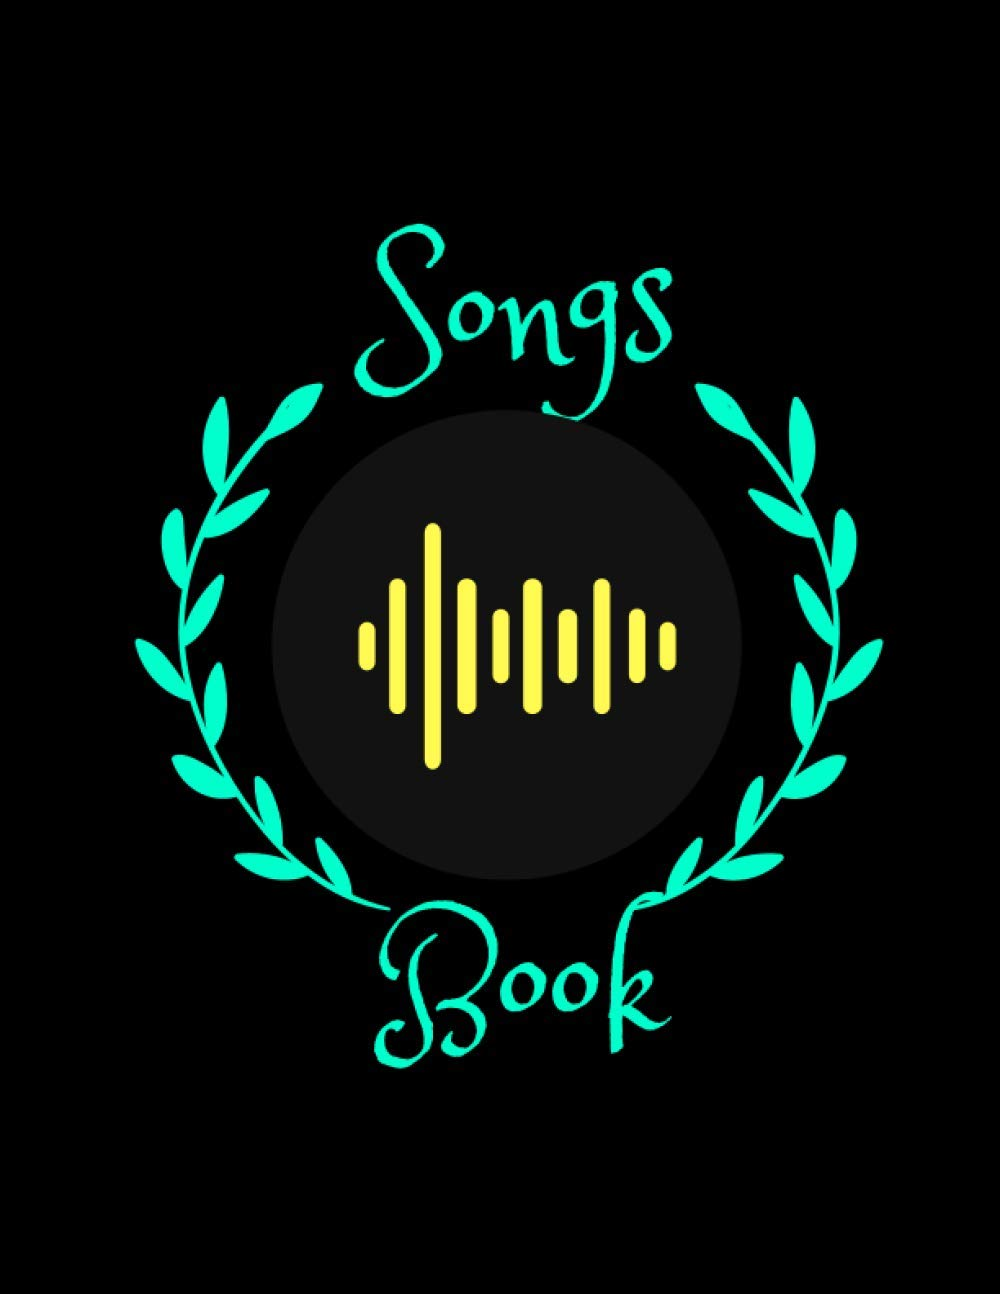 Songs Book: Lyrics Notebook To Write In _ Lined_Ruled Paper & Manuscript Paper For Lyrics & Music _ Songwriting Journal Gift For Music Lovers, Students, Songwriters 8.5 x 11 inches 120 Pages